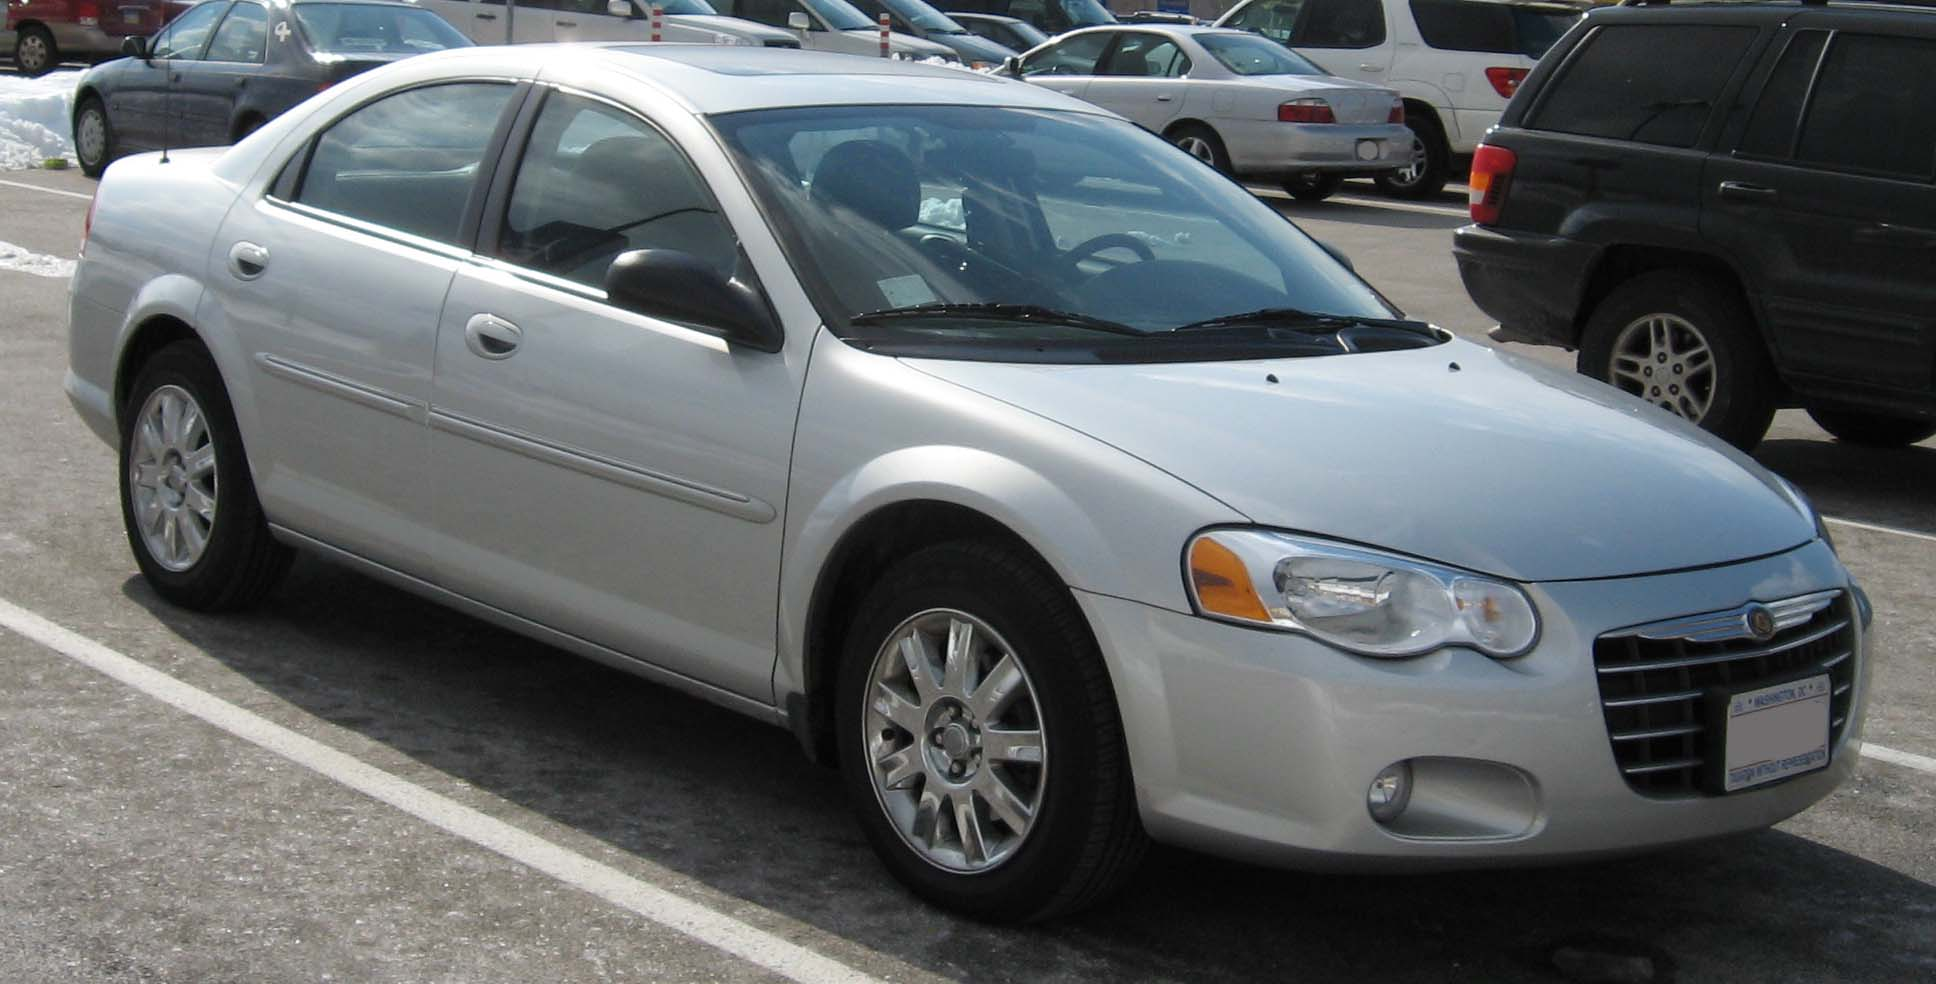 Chrysler Sebring Sedan - allcargallery - Bloguez.com